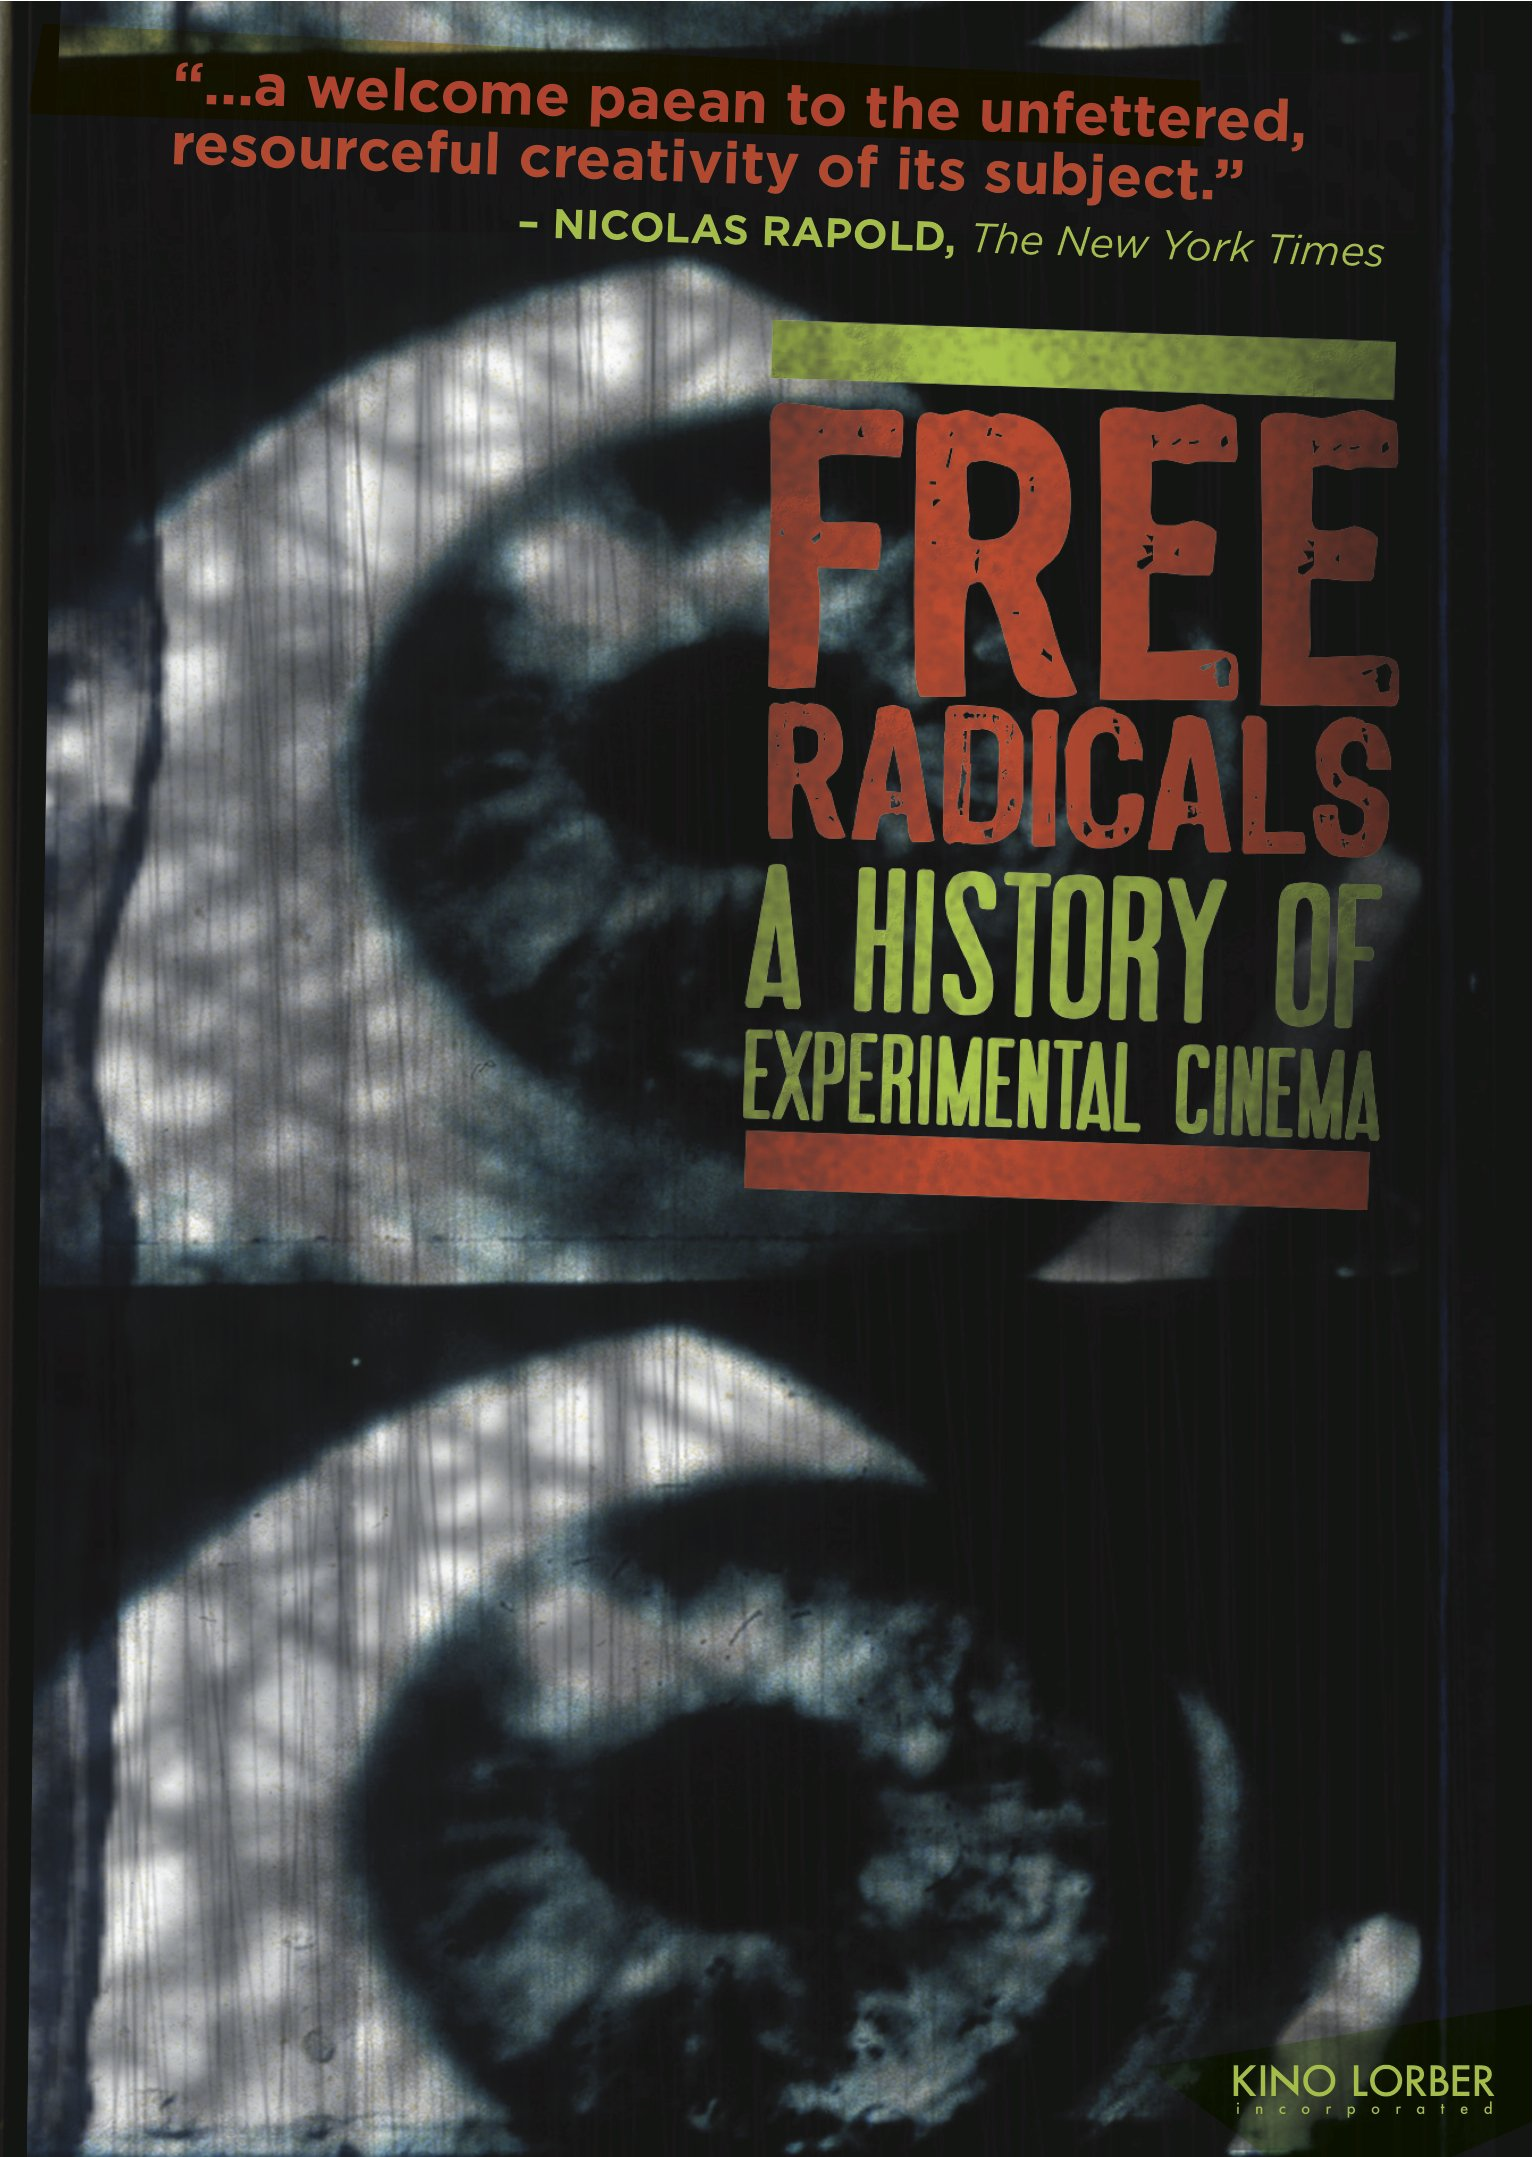 DVD : Ken Jacobs - Free Radicals: A History Of Experimental Cinema (AC-3)